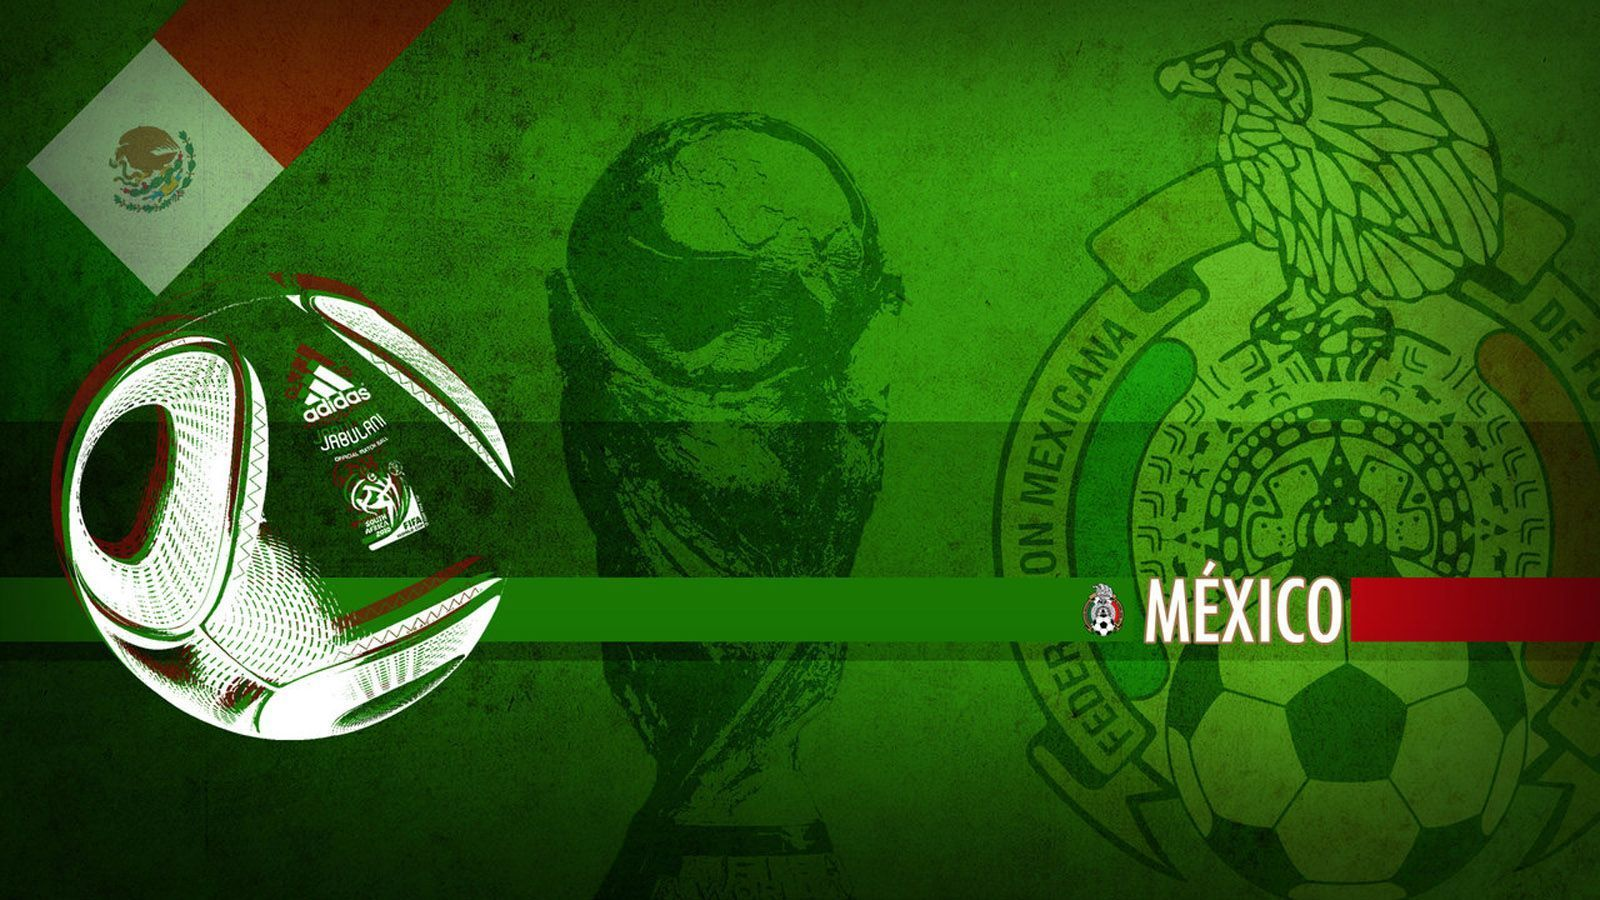 Free Download Mexico National Football Team Wallpapers 2014 Fifa